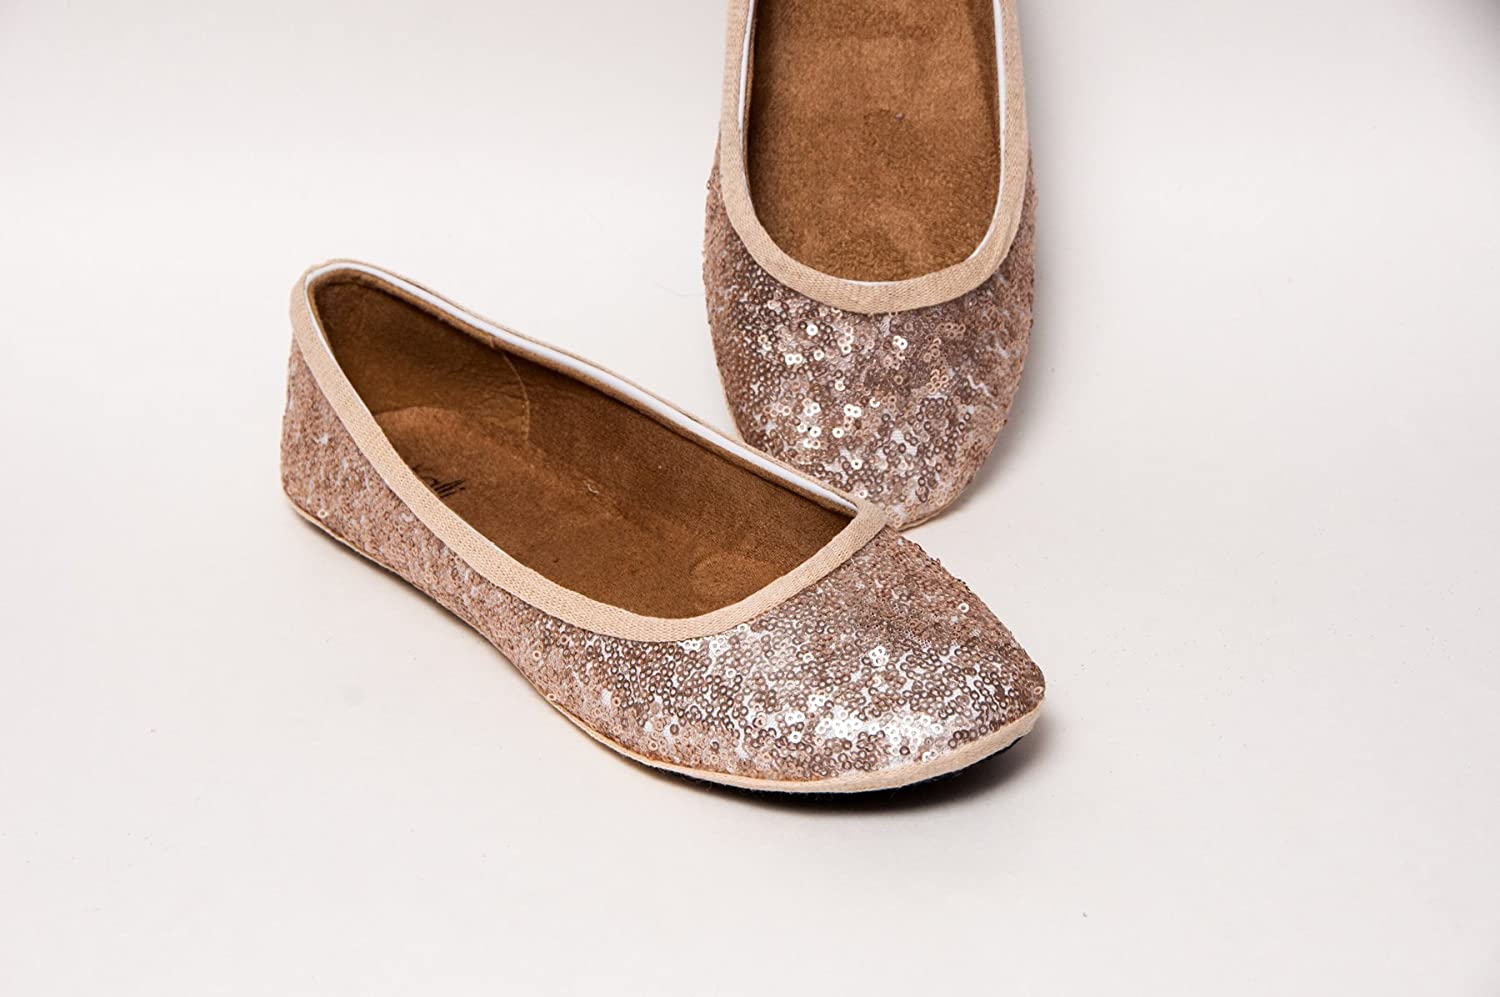 Champagne Gold Ballet Flats Slippers Shoes